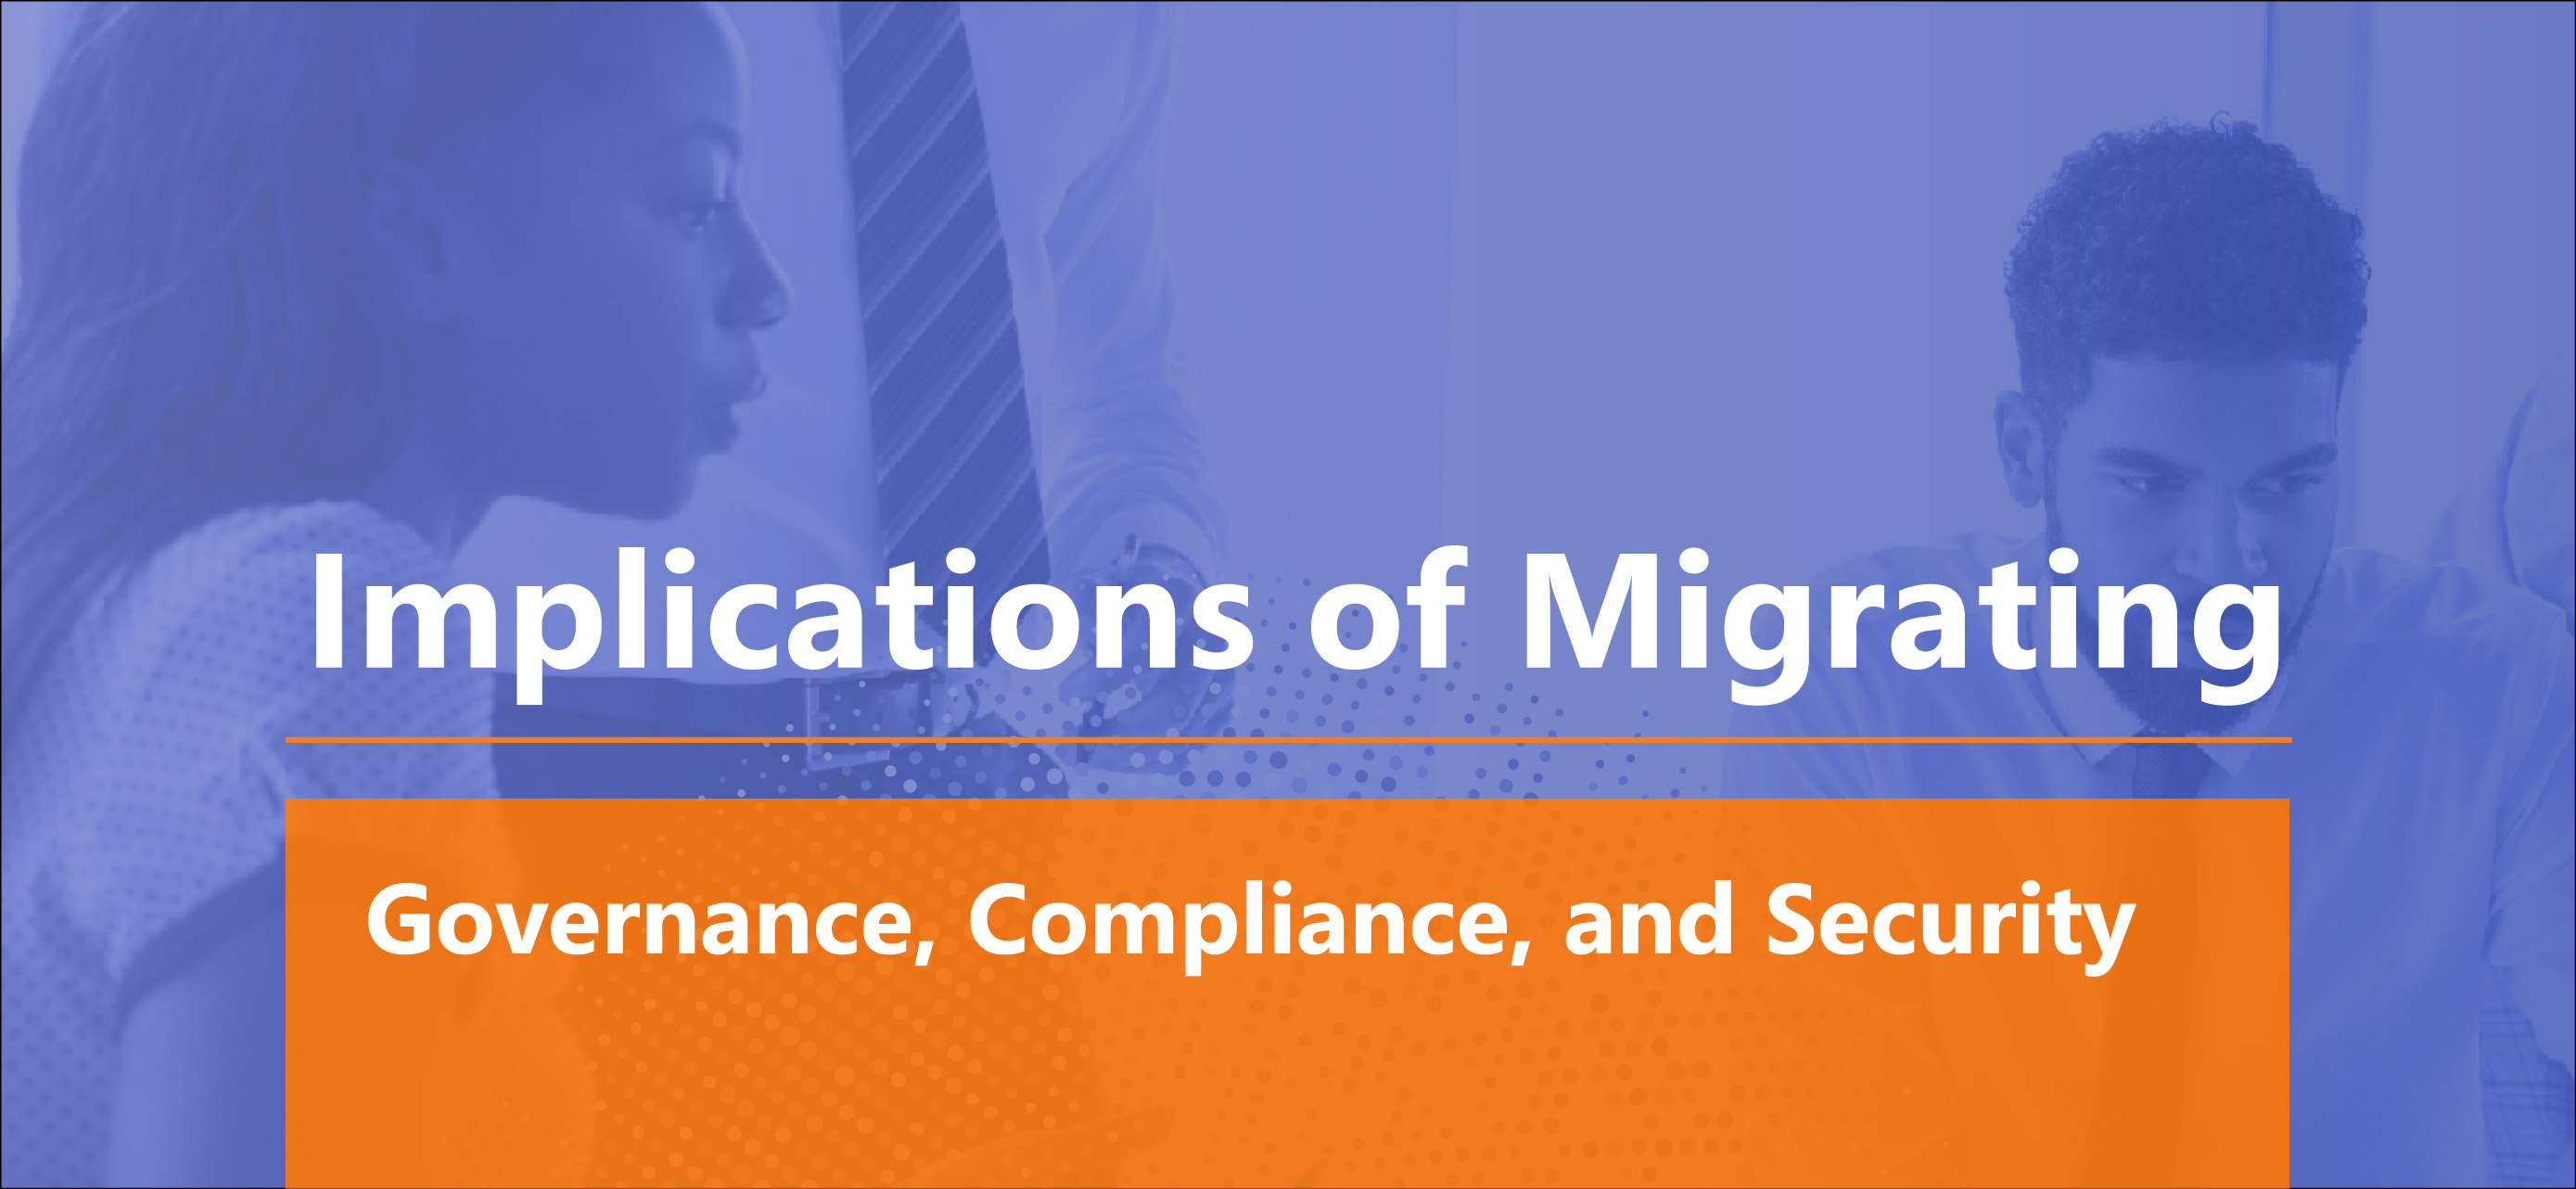 Implications of Migrating